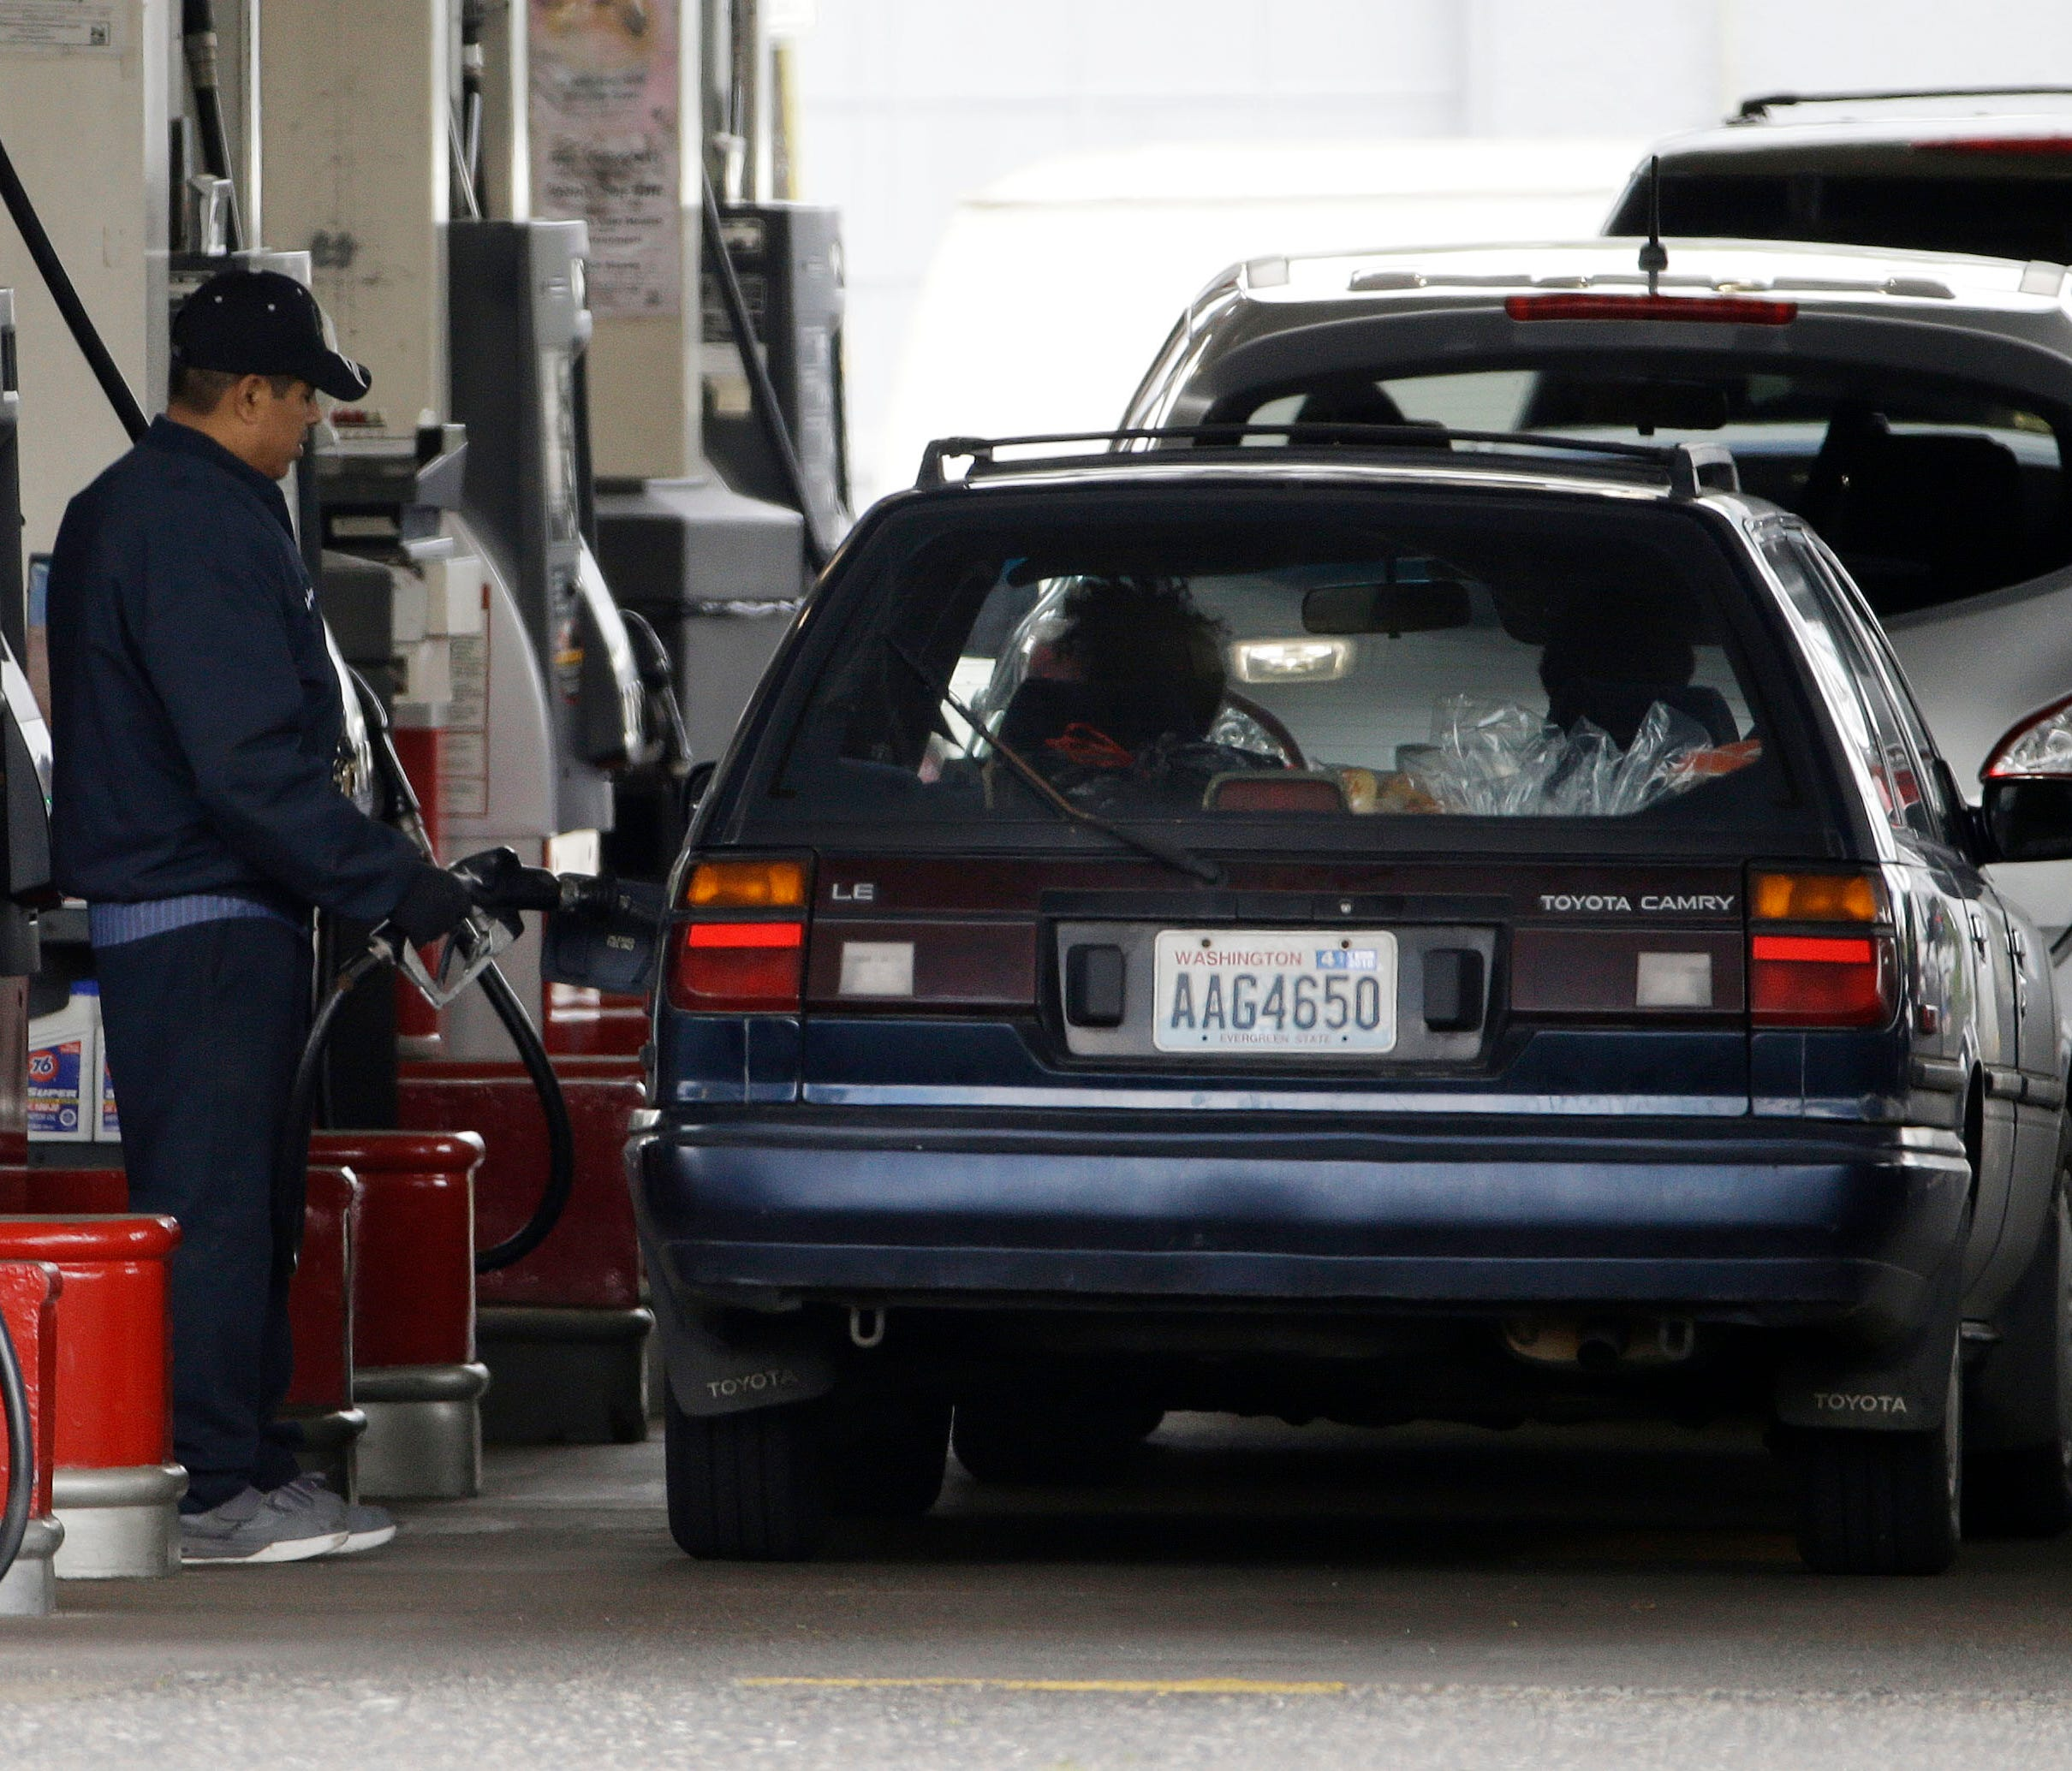 Cars line up May 6, 2015, as an attendant pumps gas at a station in Portland, Ore. AAA projects 41.5 million people will travel for the Memorial Day holiday, despite higher gas prices.